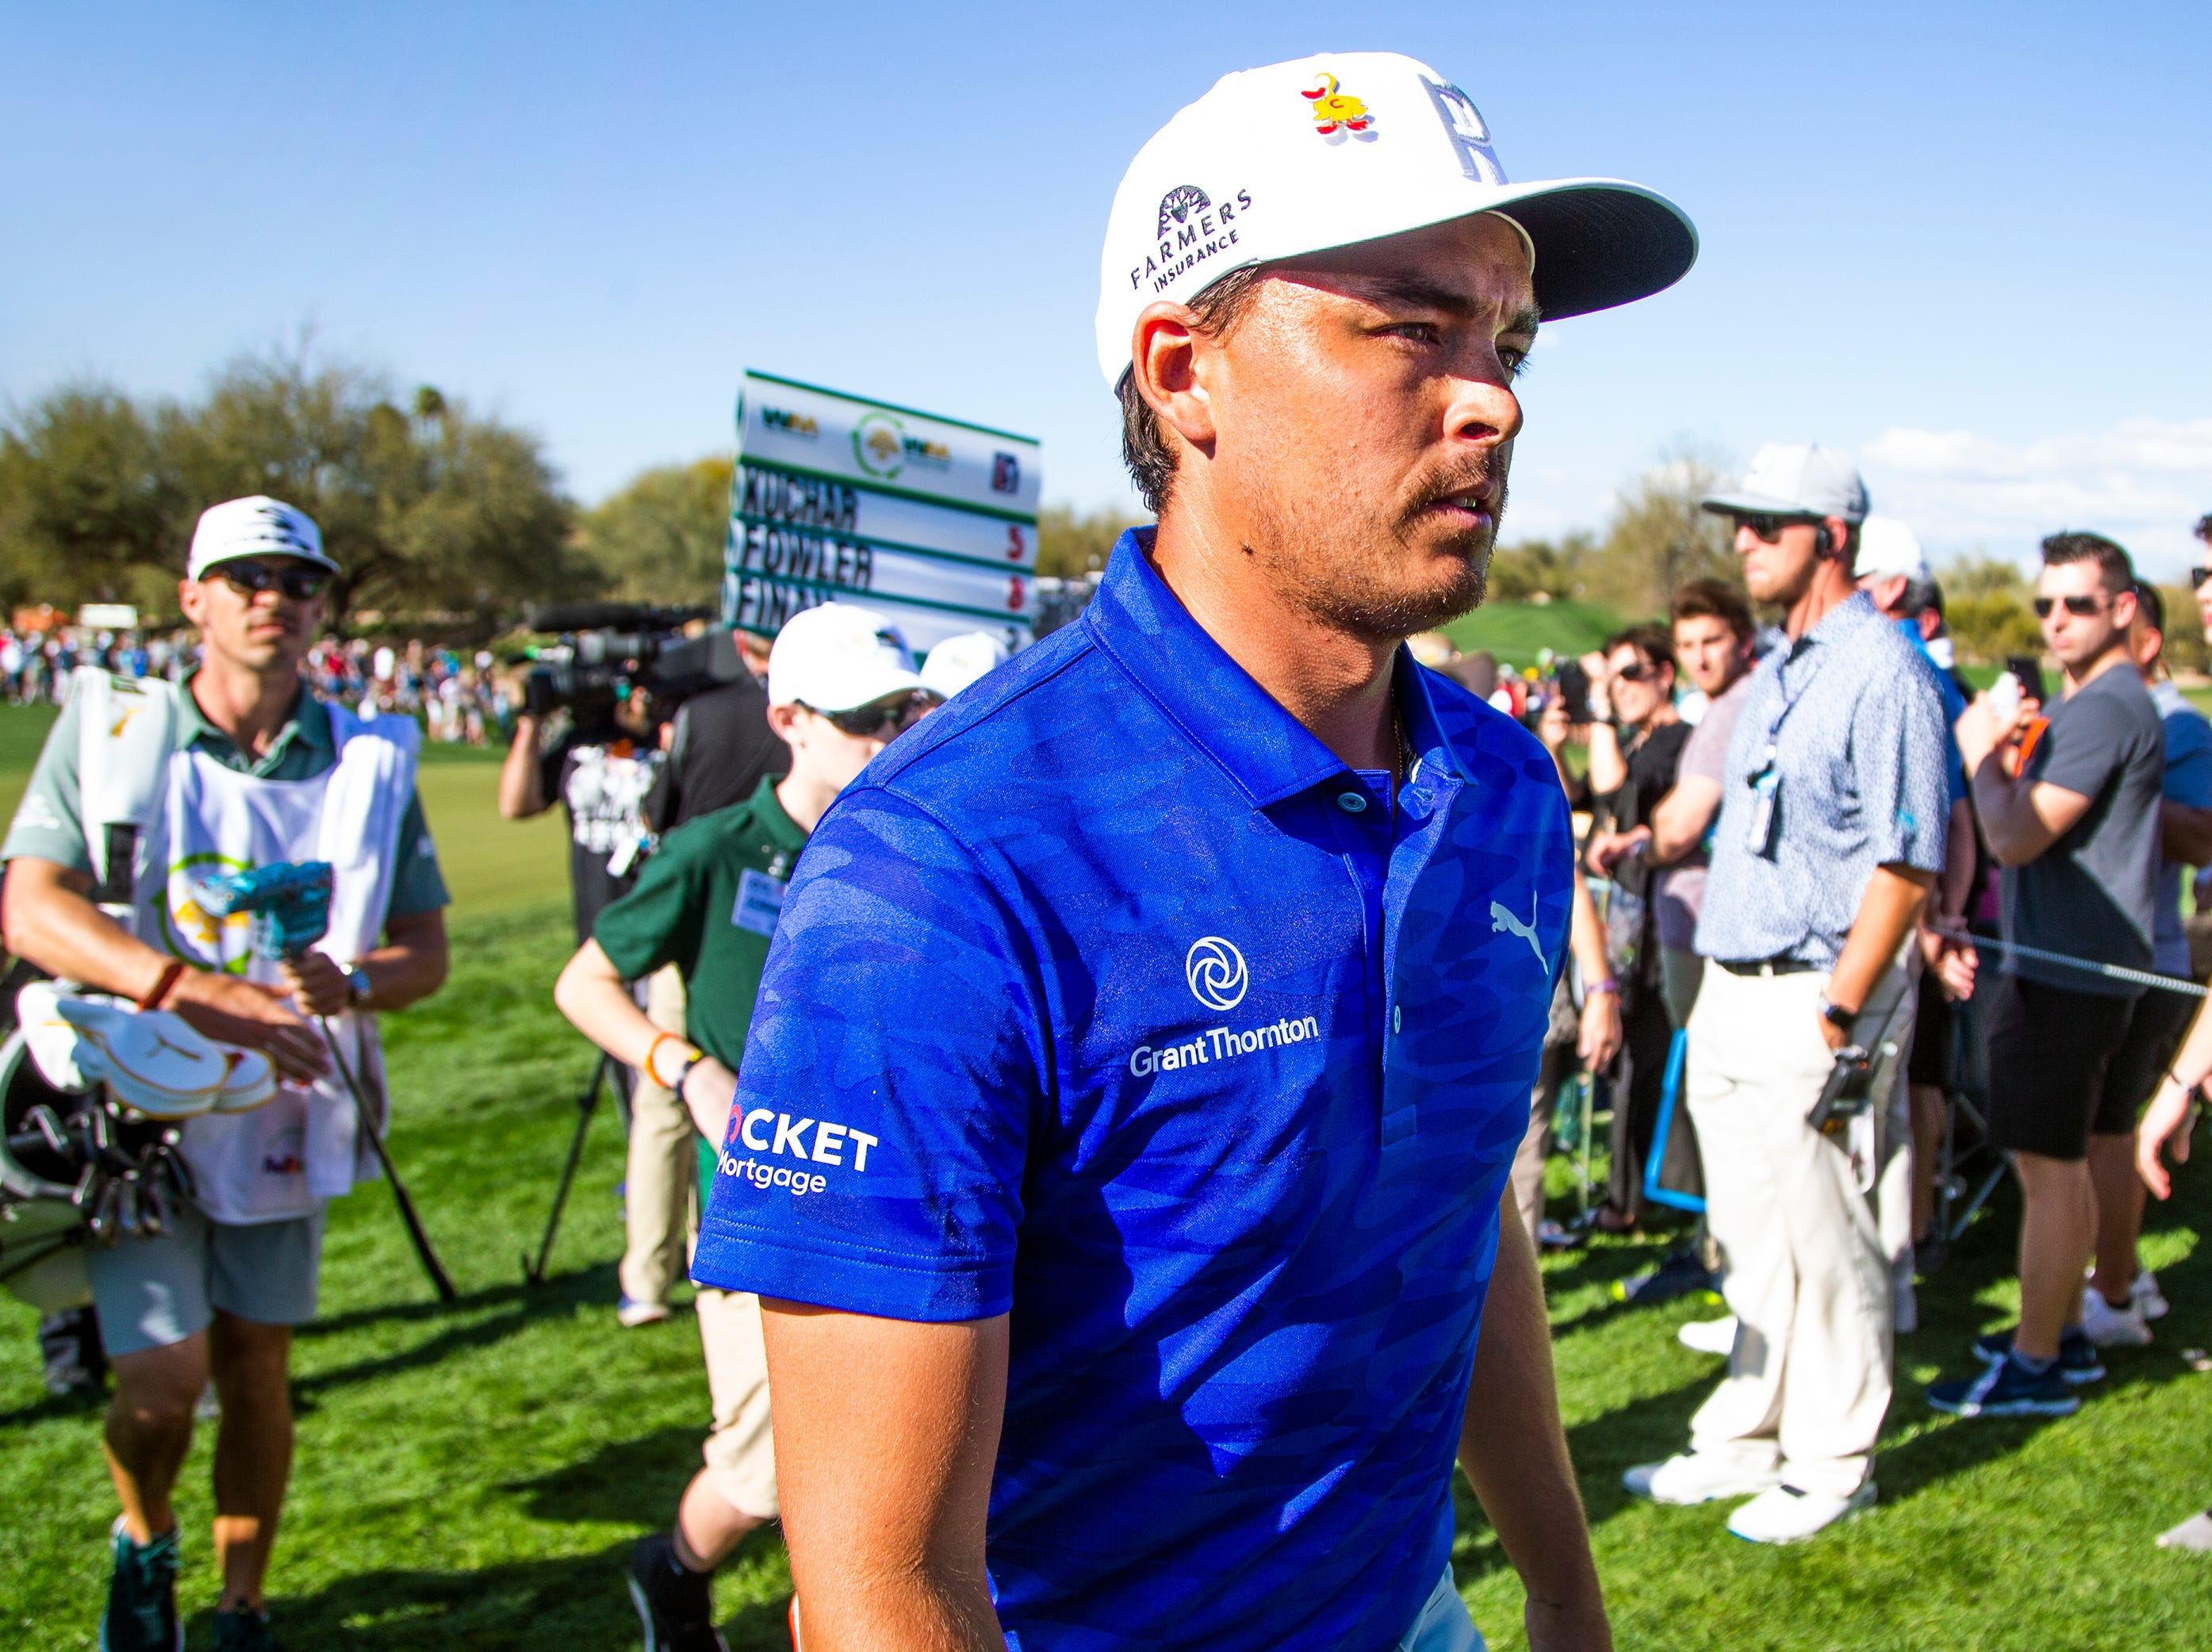 Rickie Fowler leaves the 9th hole during the second round of the Waste Management Phoenix Open at the TPC Scottsdale, Friday, February 1, 2019.